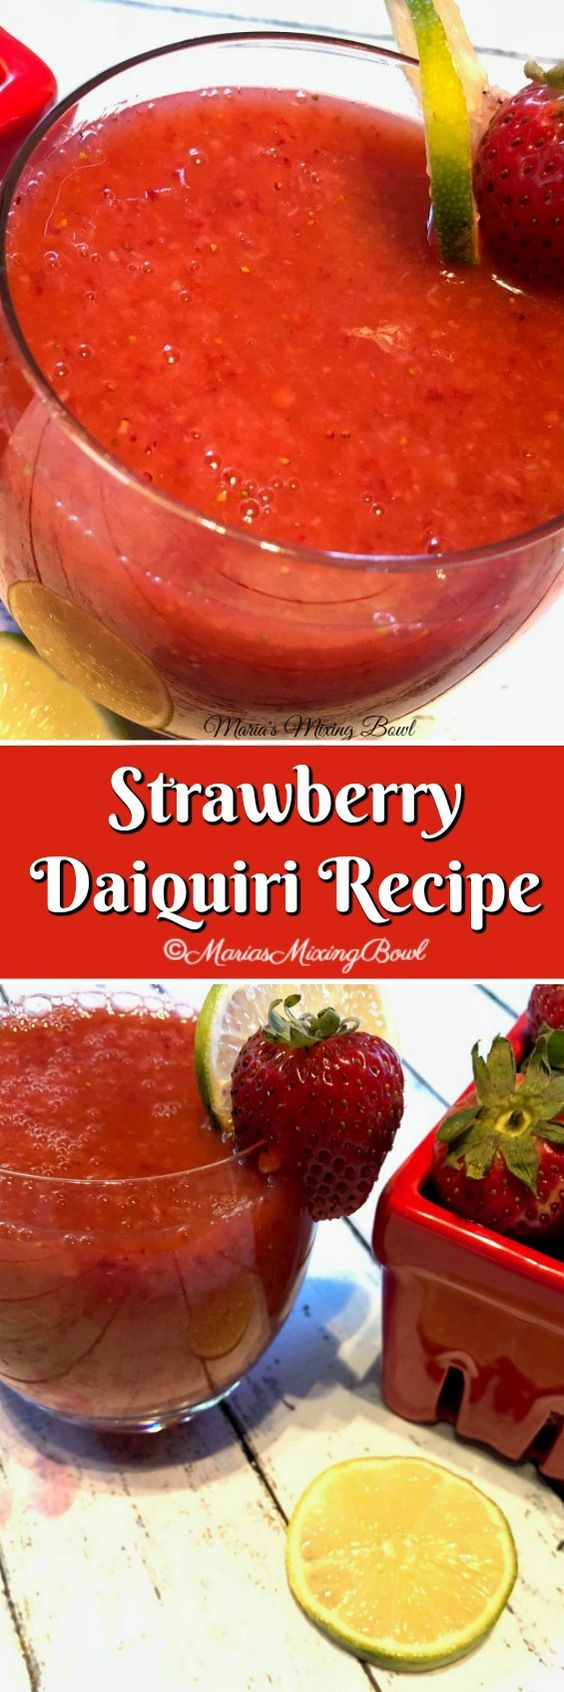 Strawberry Daiquiri Recipe - Break out the blender and whip up a batch or two of these sweet and frosty cocktails!